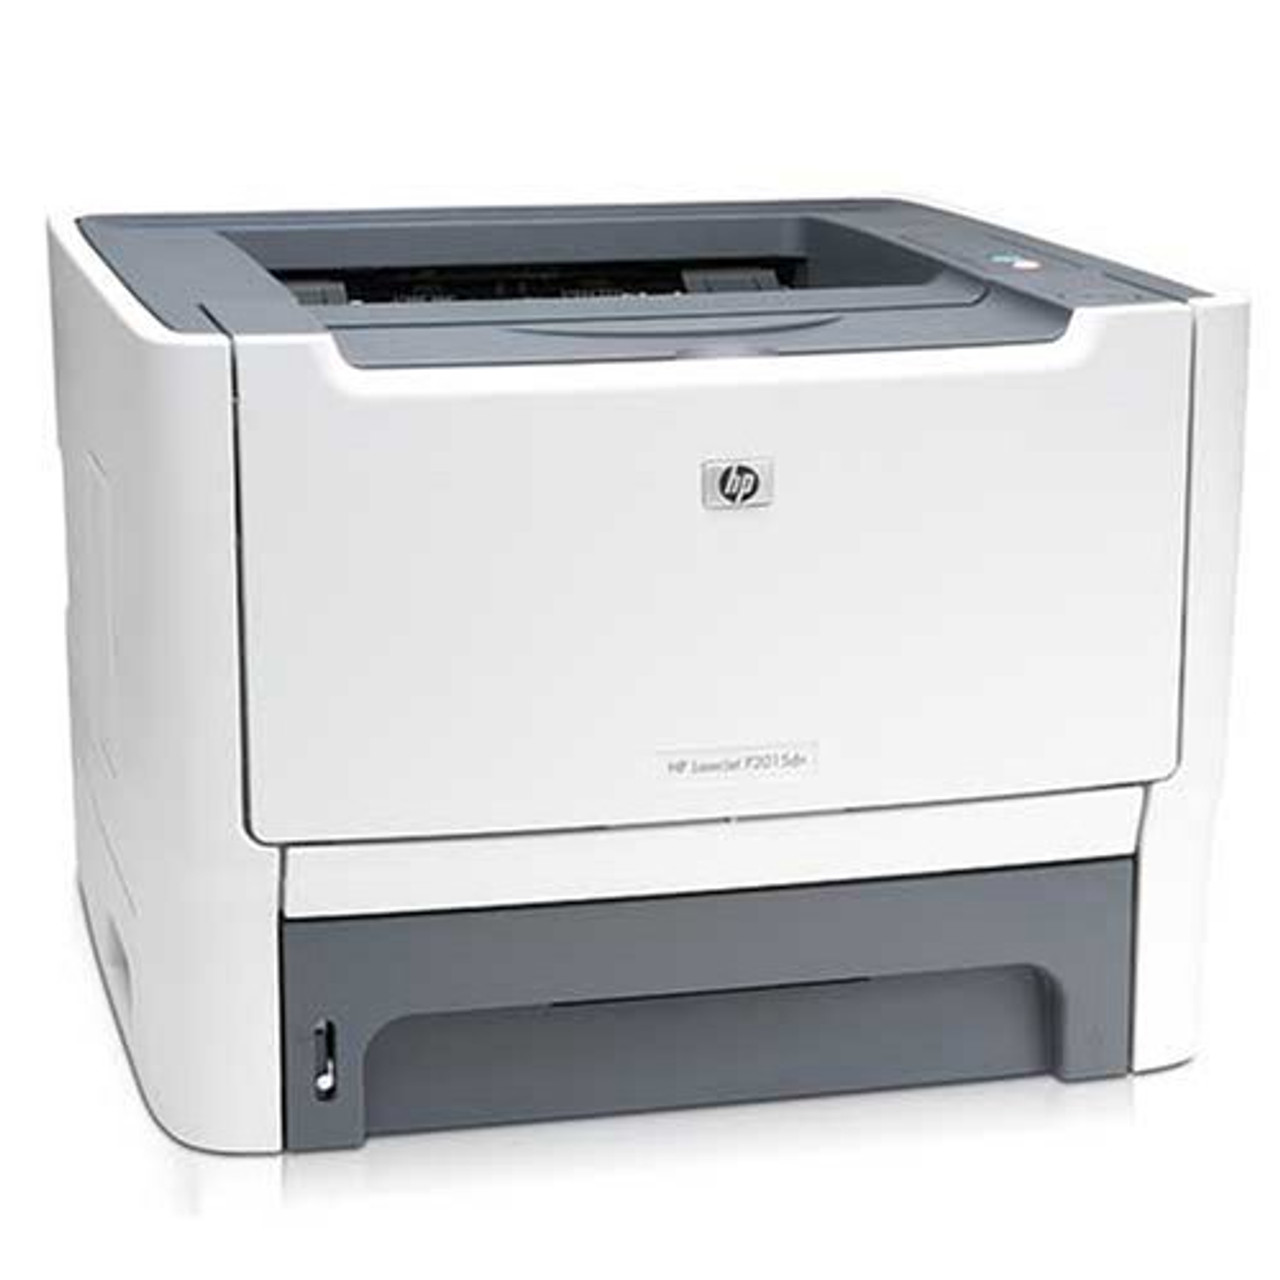 HP LaserJet P2015dn - CB368a - HP Laser Printer for sale